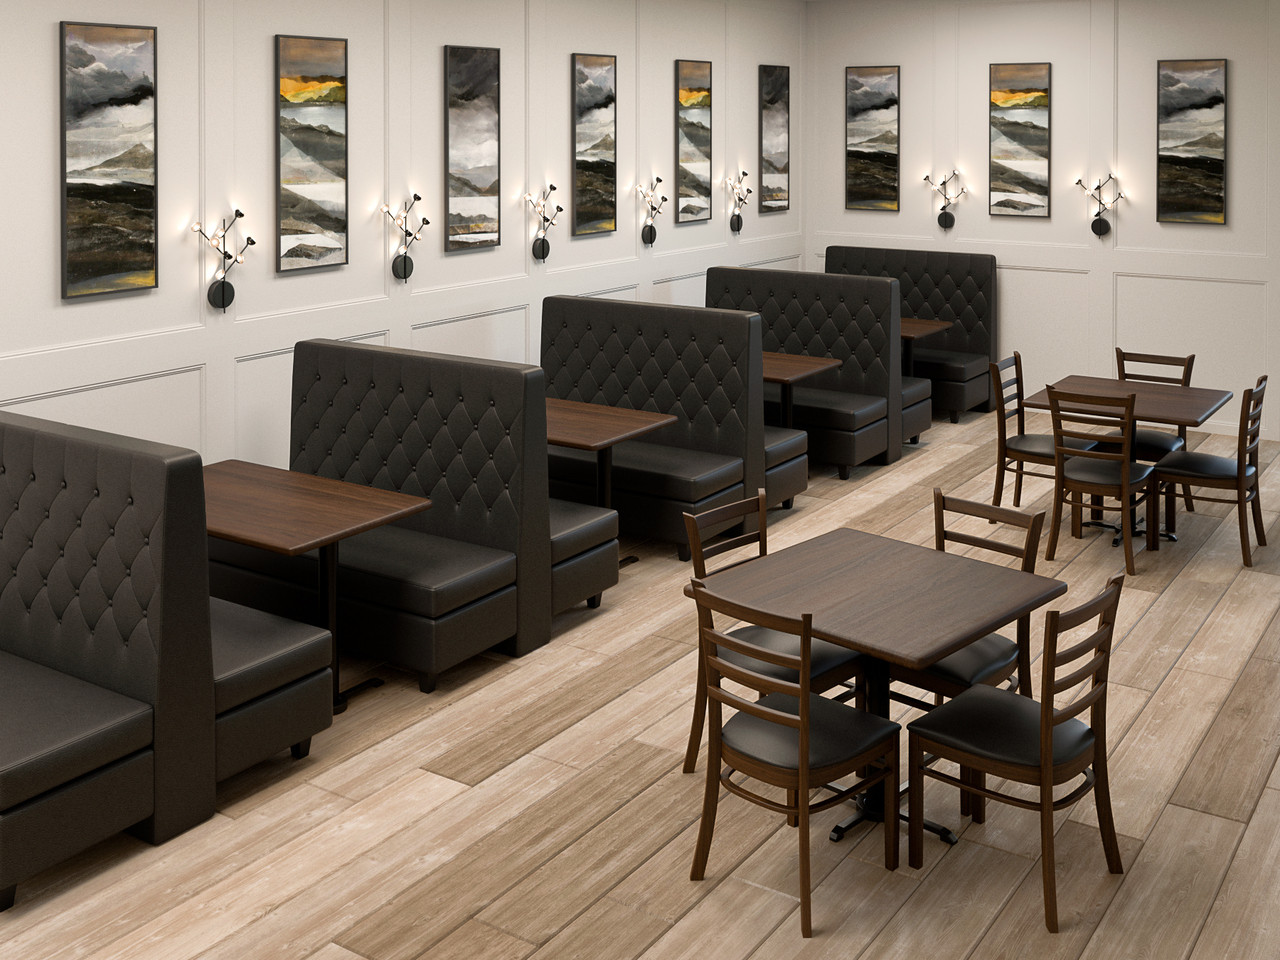 Custom Banquette Double Booths Restaurant Tables Restaurant Chairs Made In Usa Restaurant Complete Interior Solution 19 Modernlinefurniture